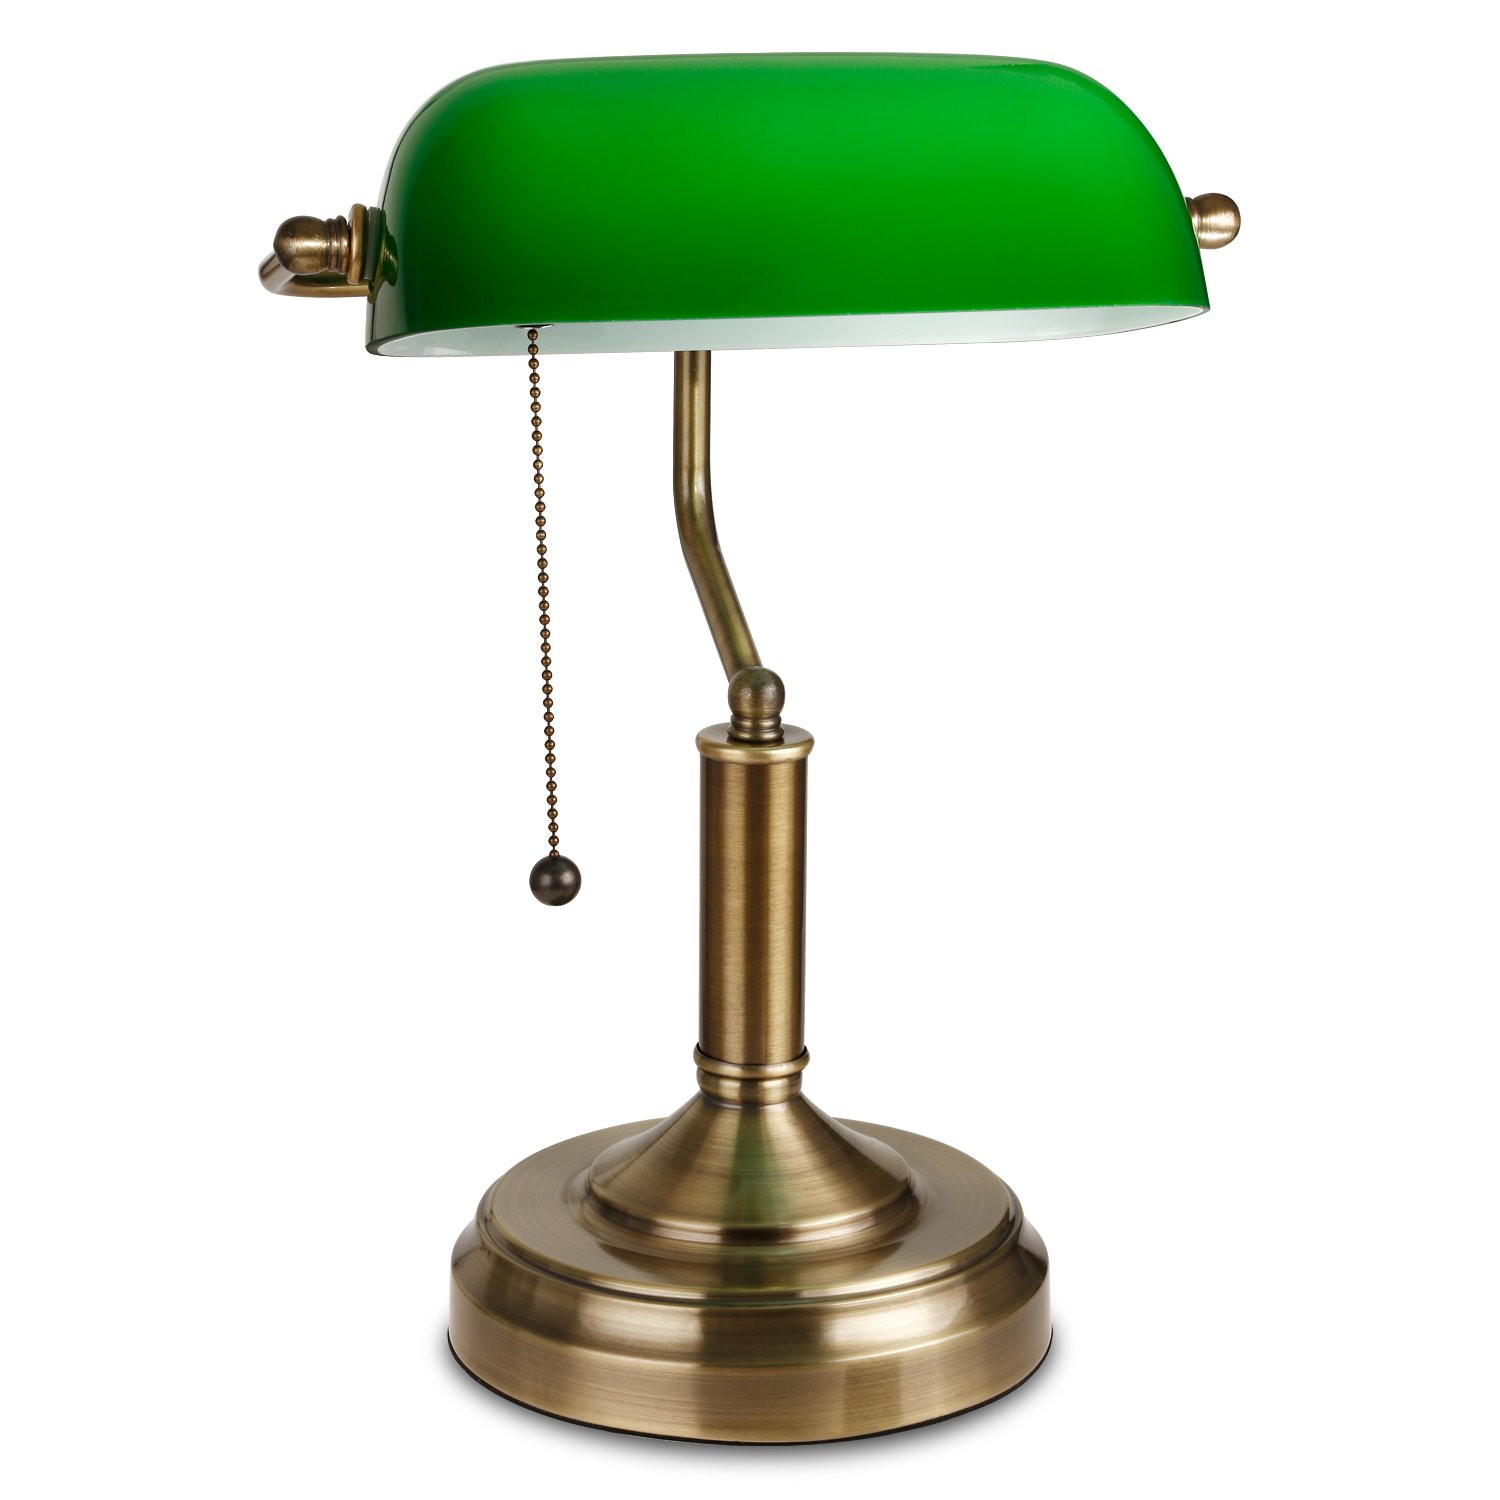 Amazon torchstar traditional bankers lamp antique style amazon torchstar traditional bankers lamp antique style emerald green glass desk light fixture satin brass finish metal beaded pull cord switch aloadofball